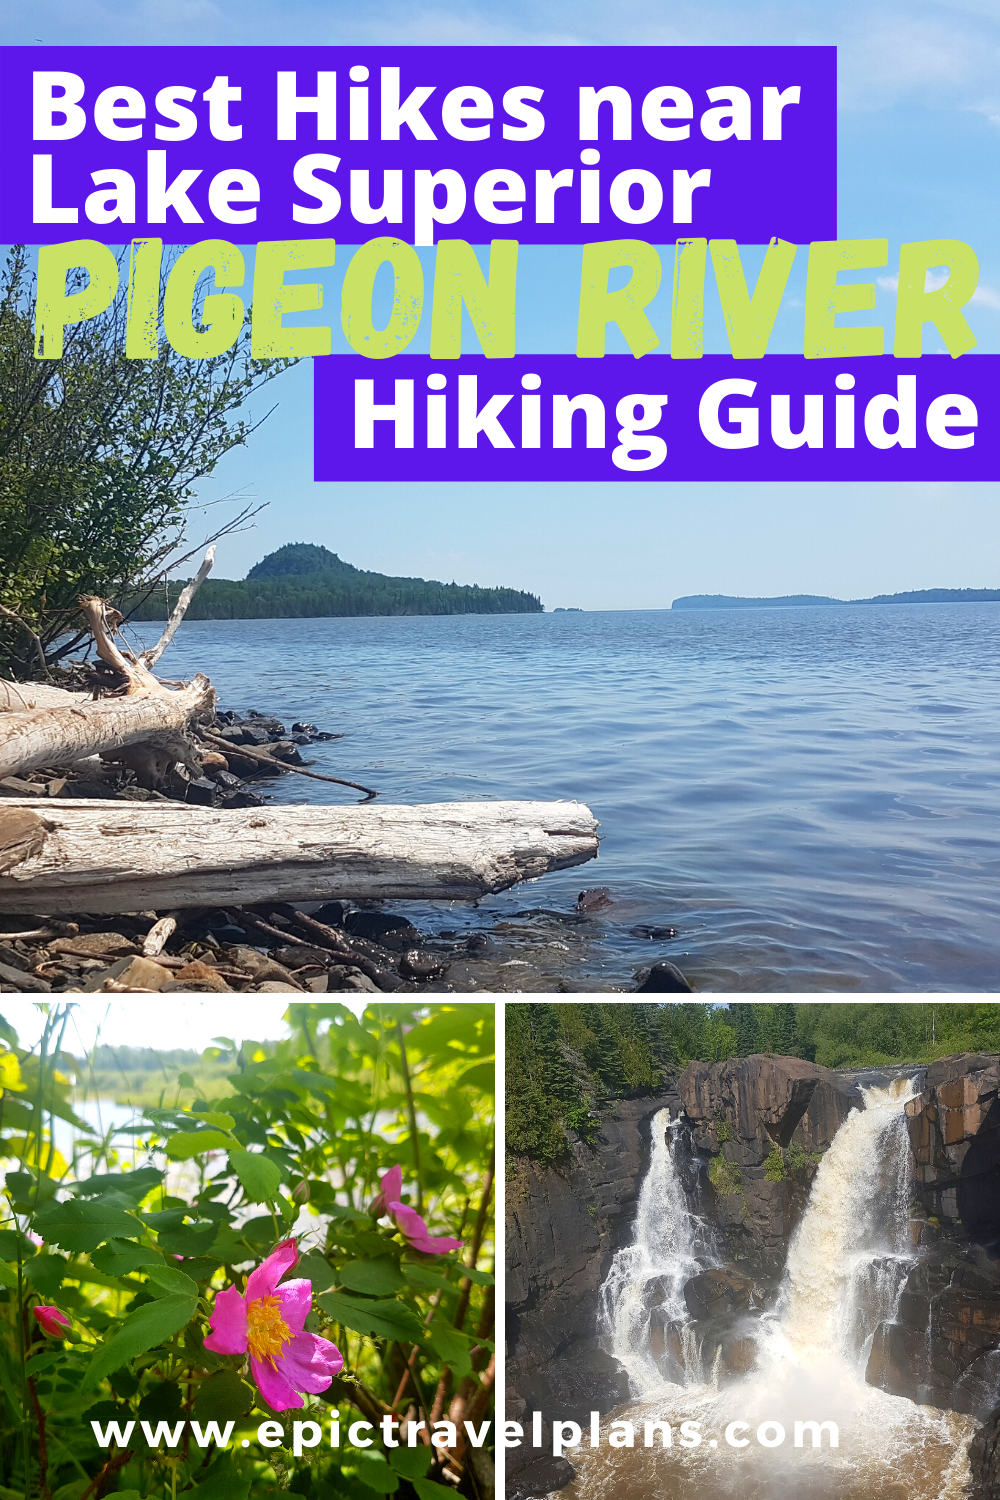 Best hiking trails near Lake Superior, Pigeon River Ontario hiking guide, near Minnesota